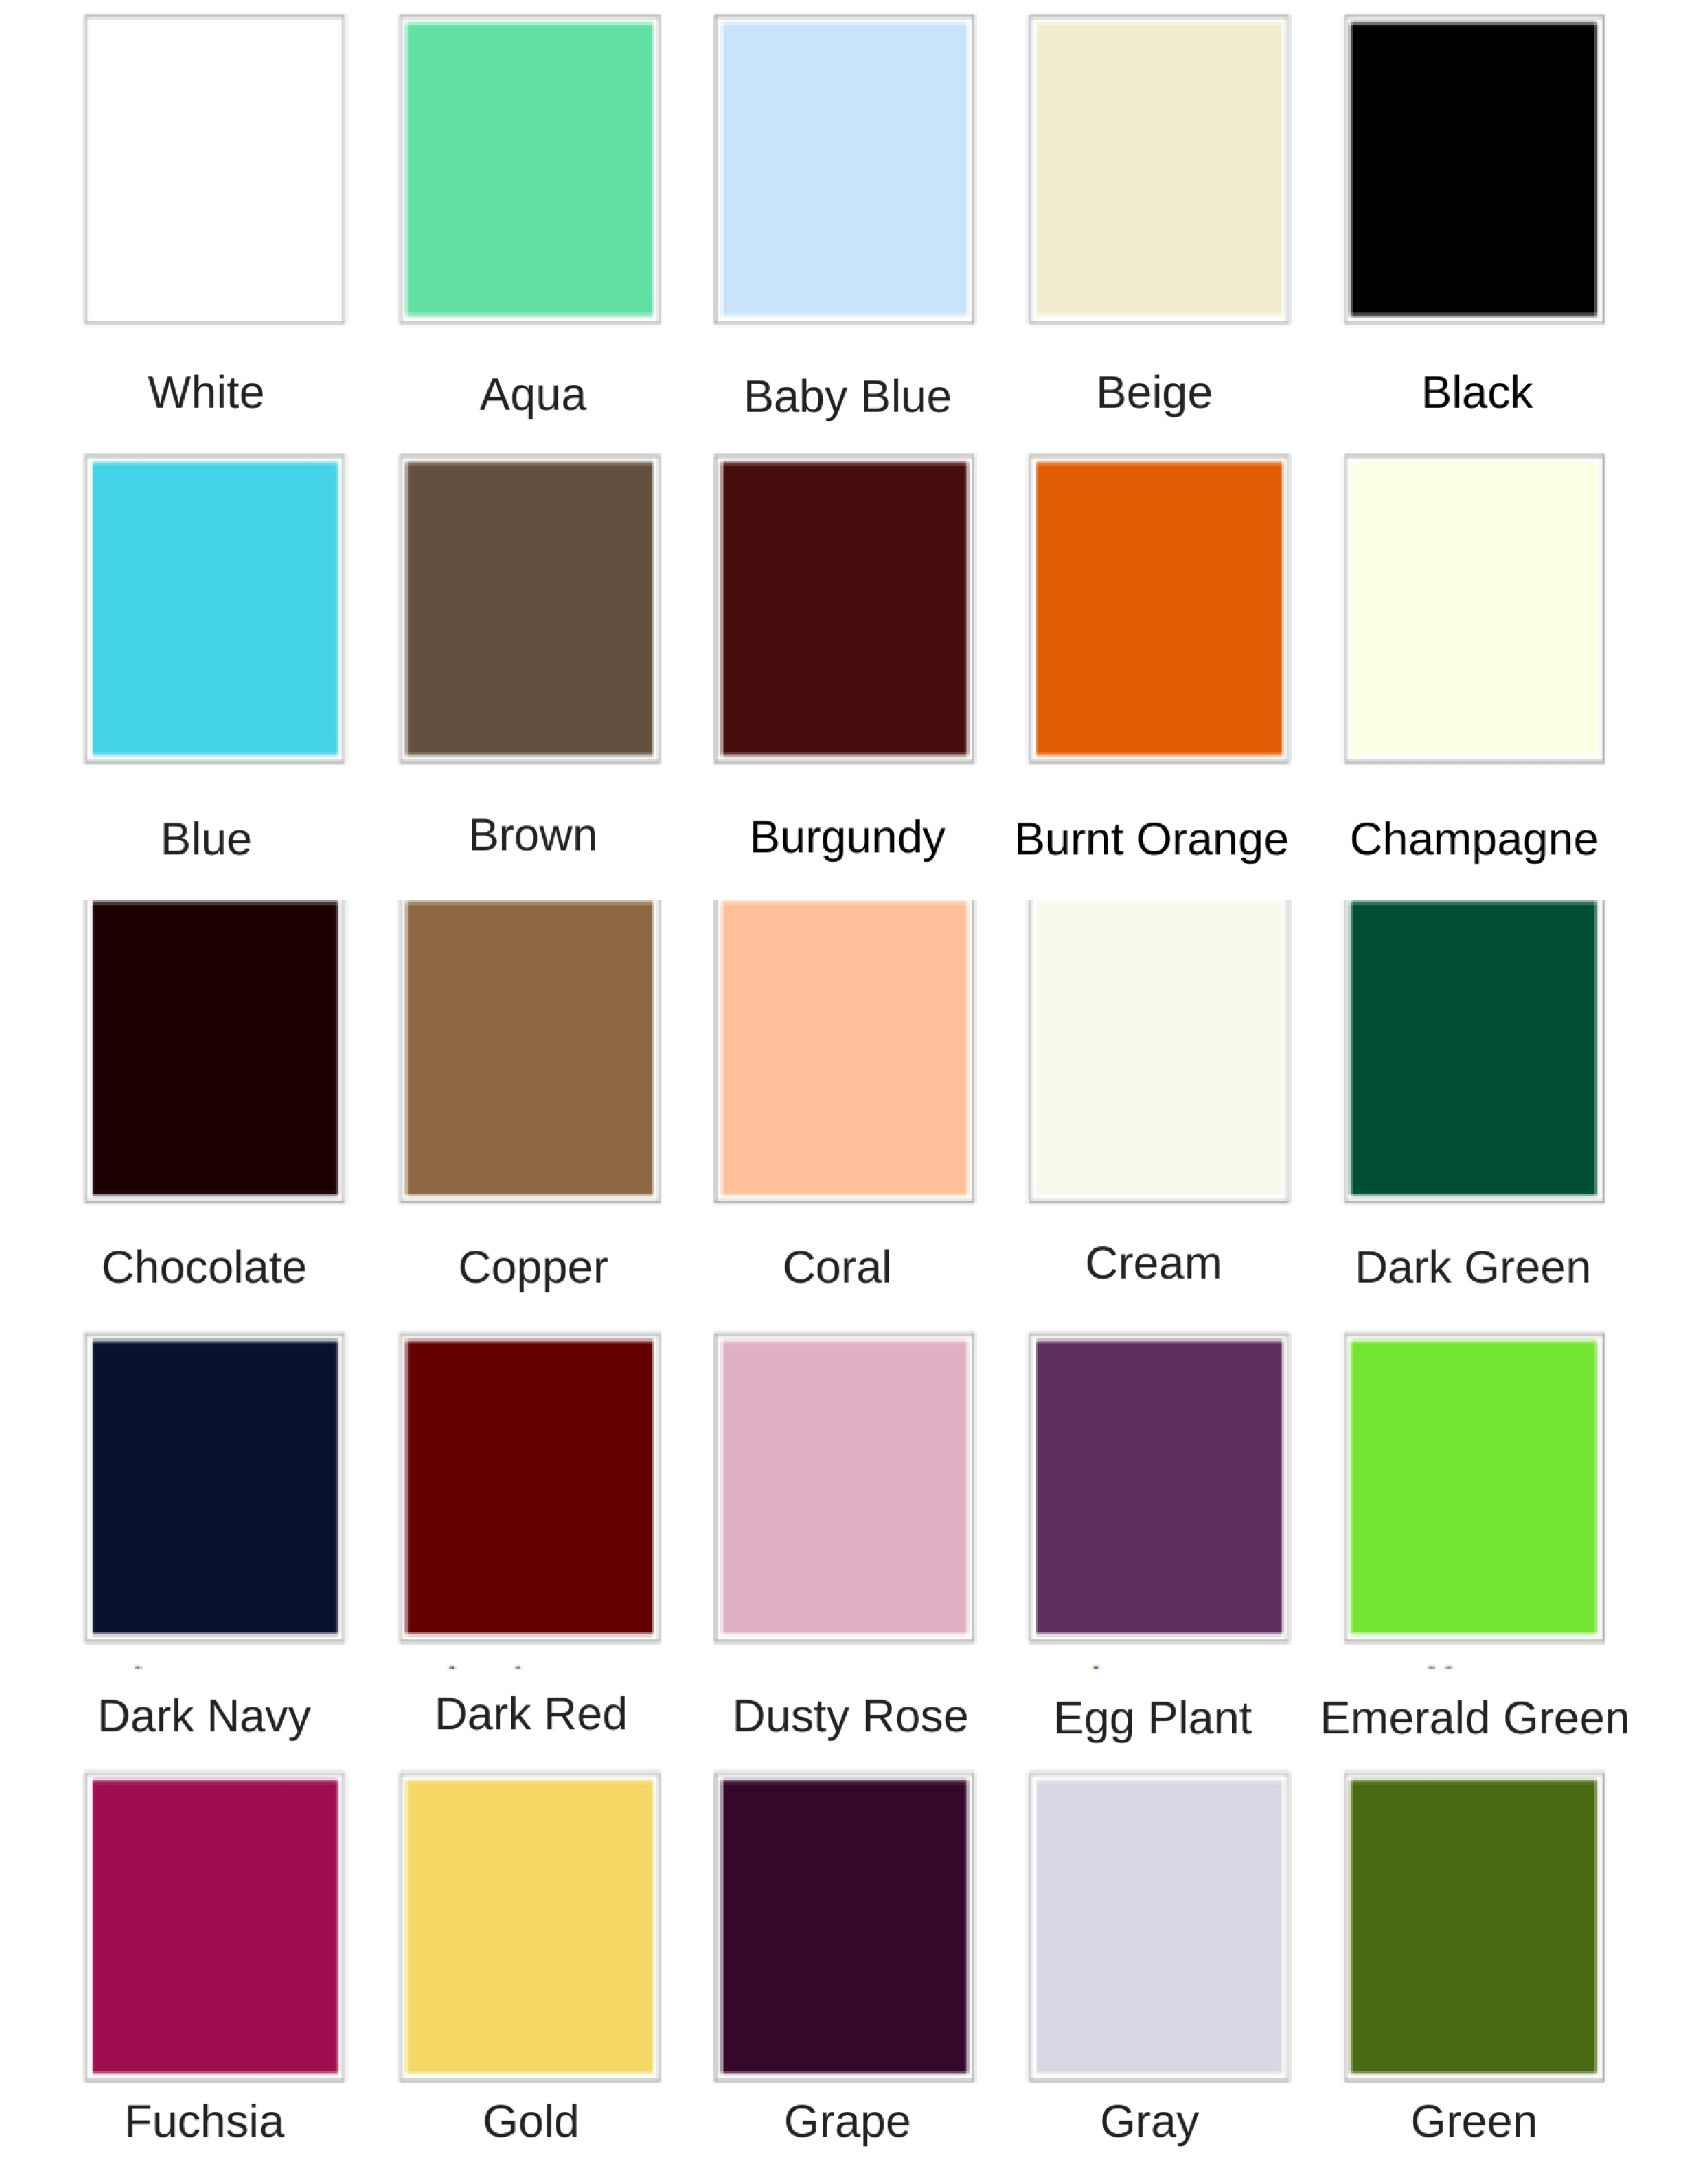 Size colour chart wedding for you light blue light pink lilac lime green magenta maroon nude olive green orange pale yellow peach pink plum purple red royal blue sage nvjuhfo Images